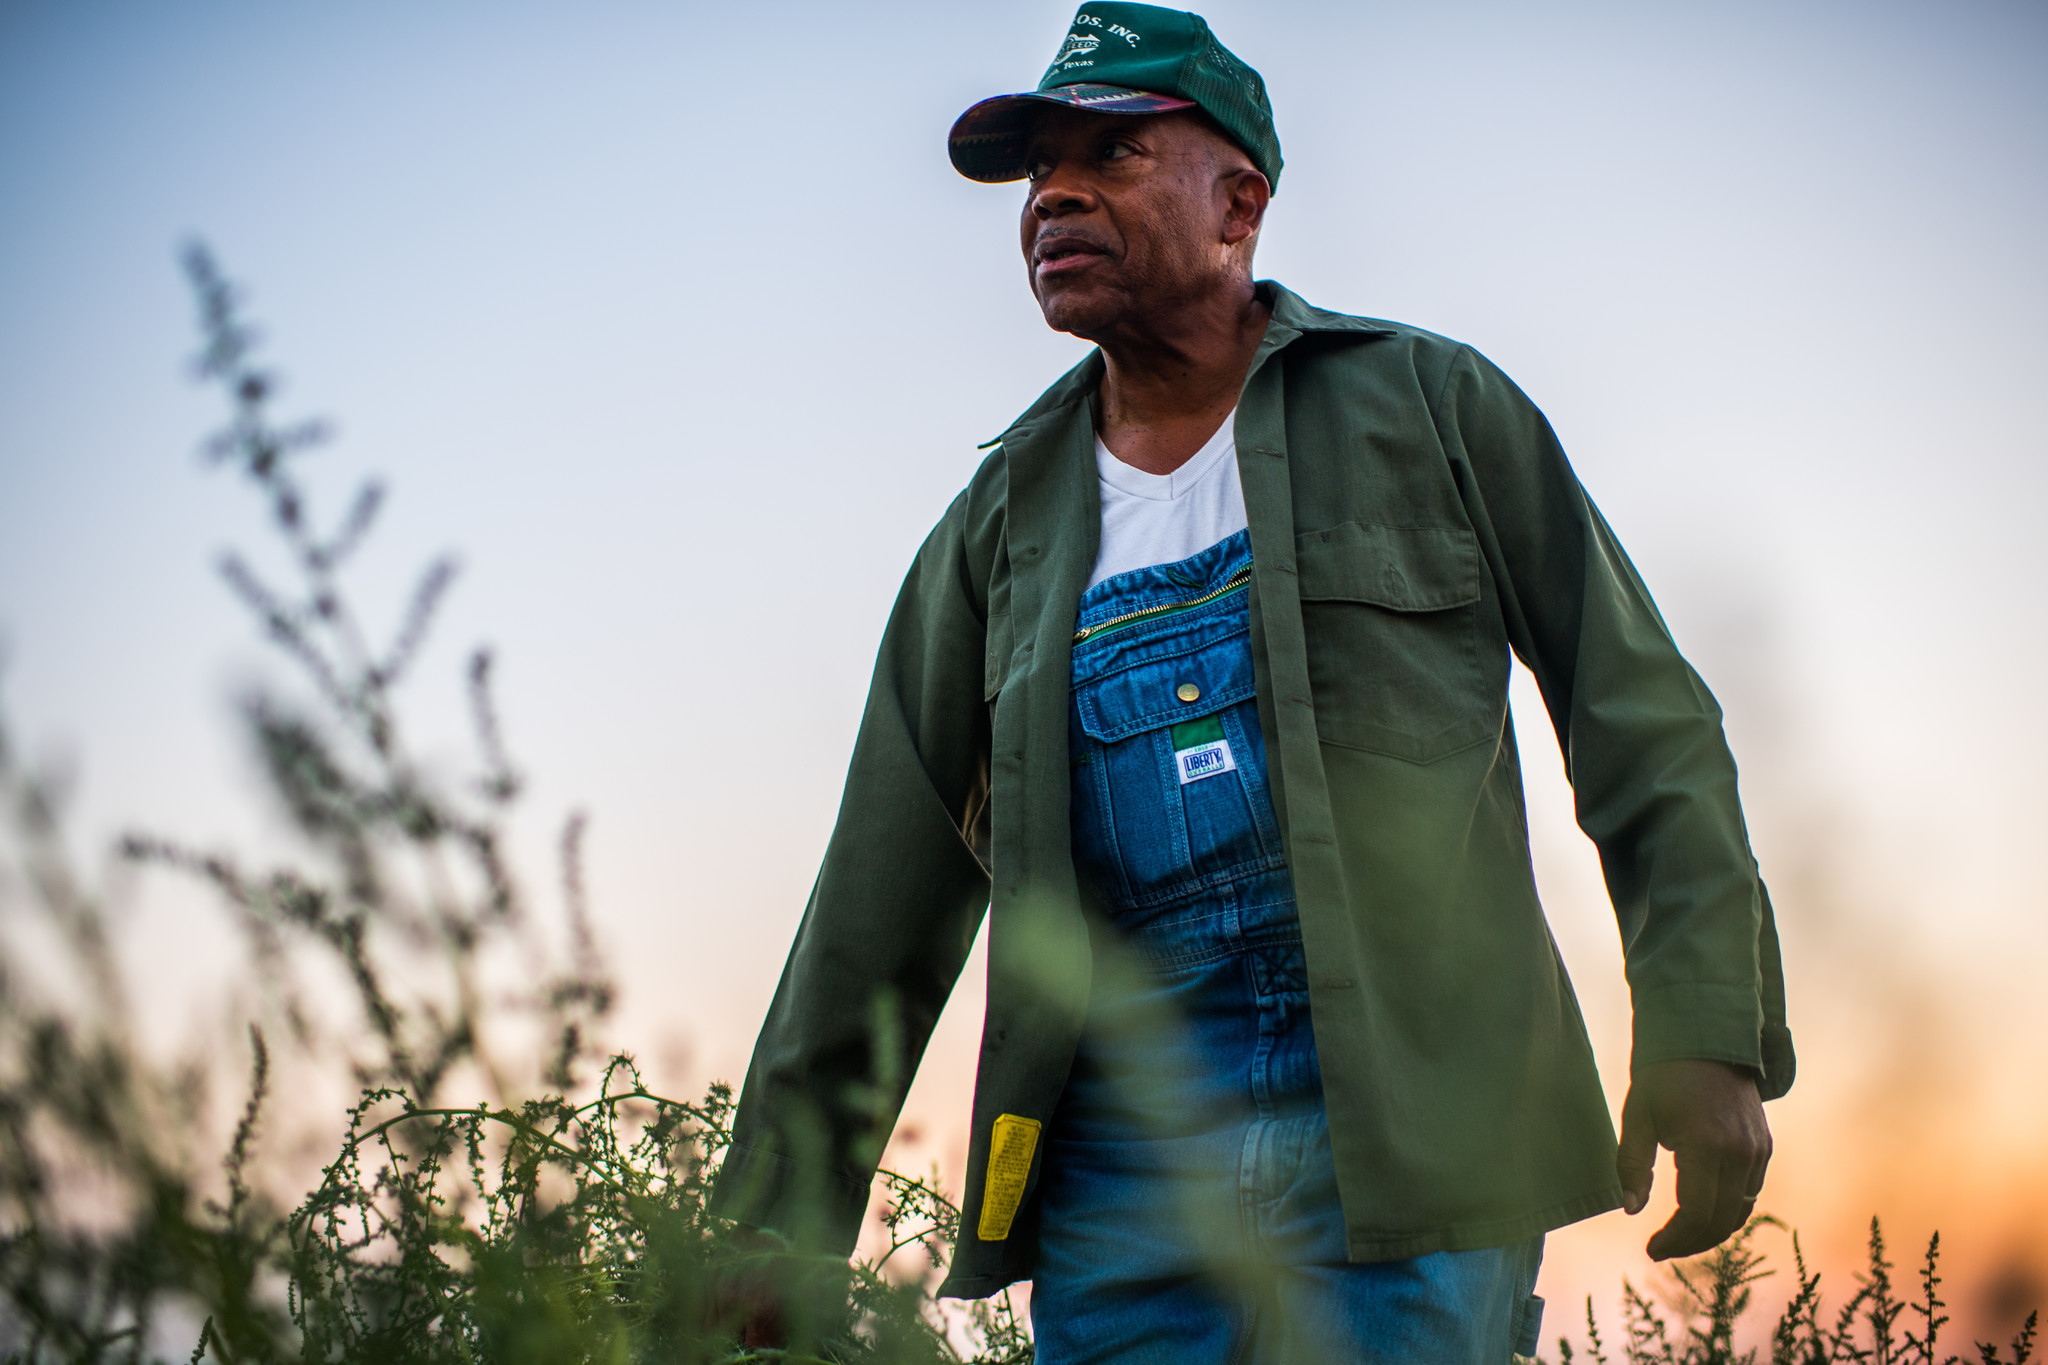 Dennis Hutson checks irrigation valves in his alfalfa fields in Allensworth California on August 12,